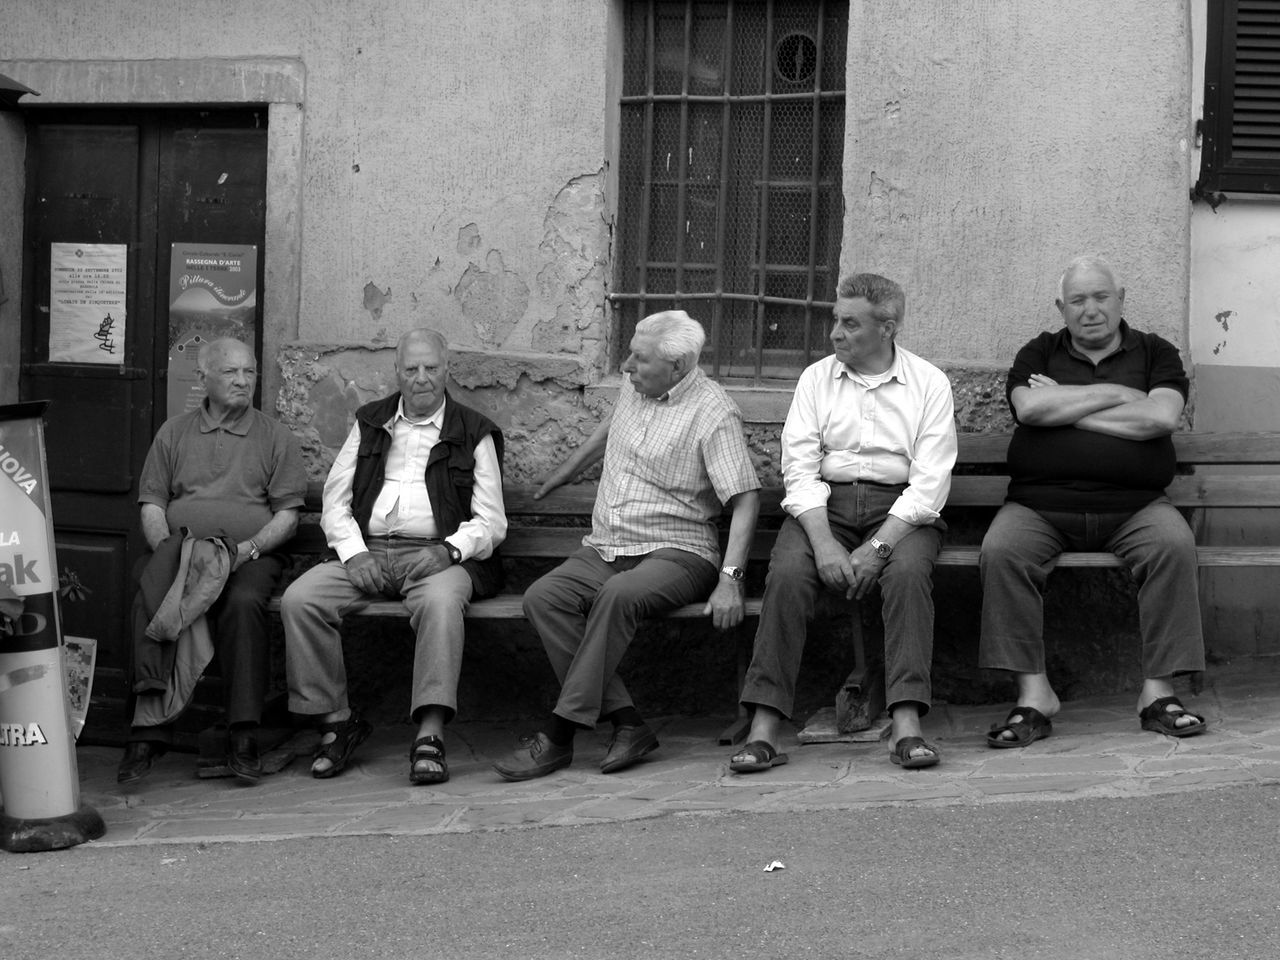 sitting, senior adult, full length, building exterior, senior men, outdoors, men, mature adult, adult, day, friendship, city, group of people, people, togetherness, architecture, adults only, portrait, only men